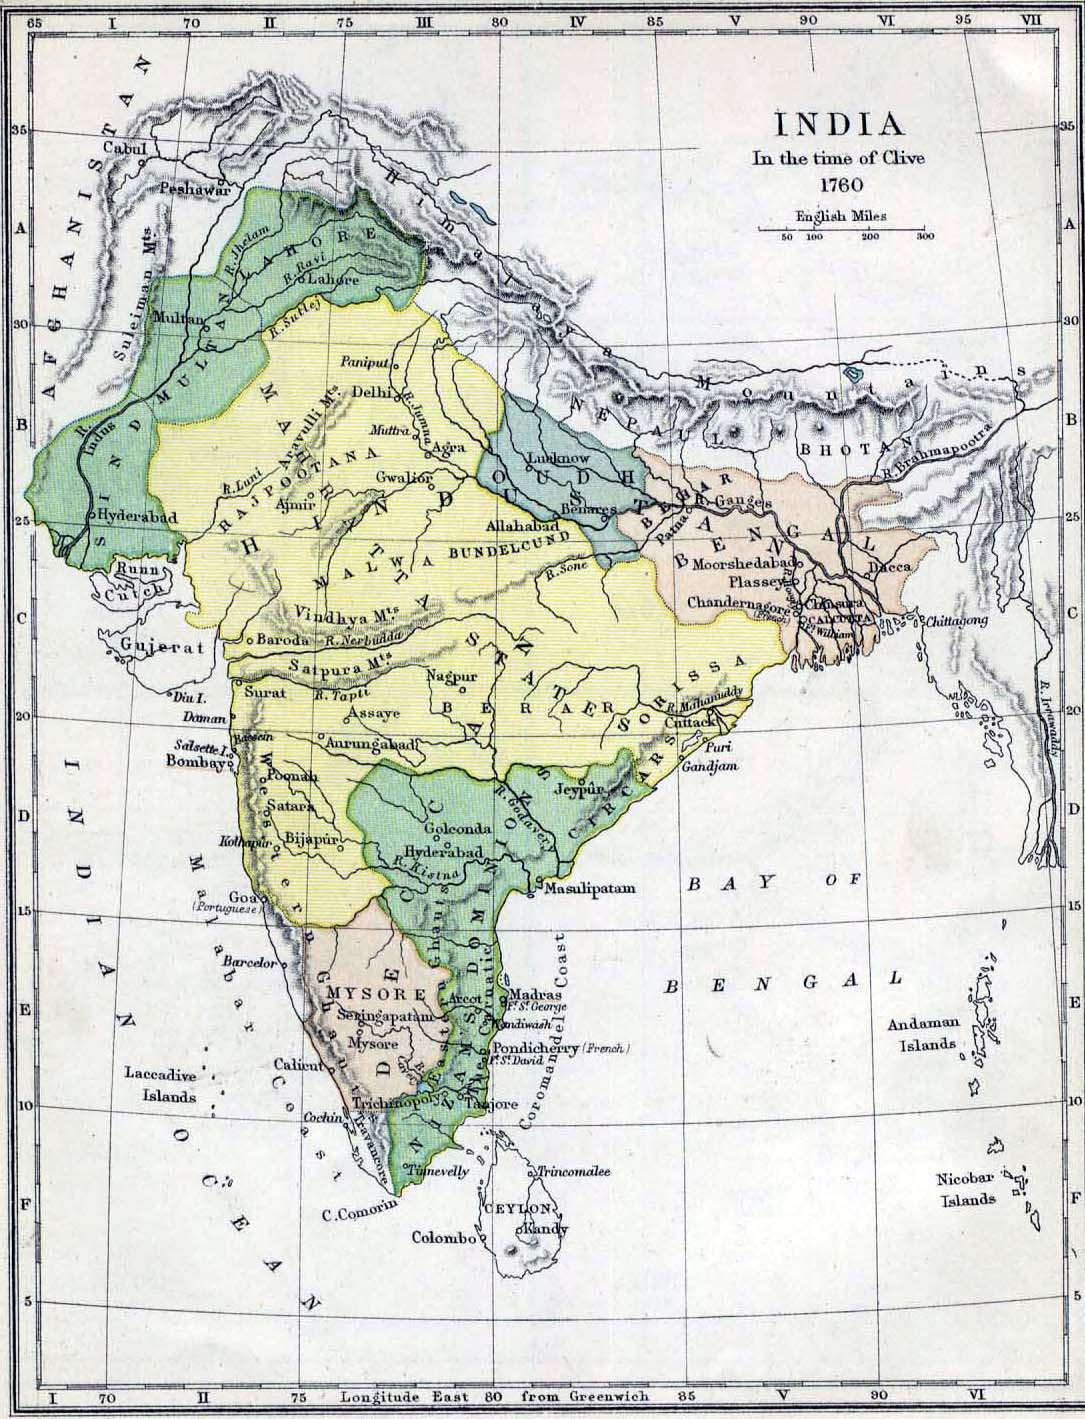 Map of India in the time of Clive 1760